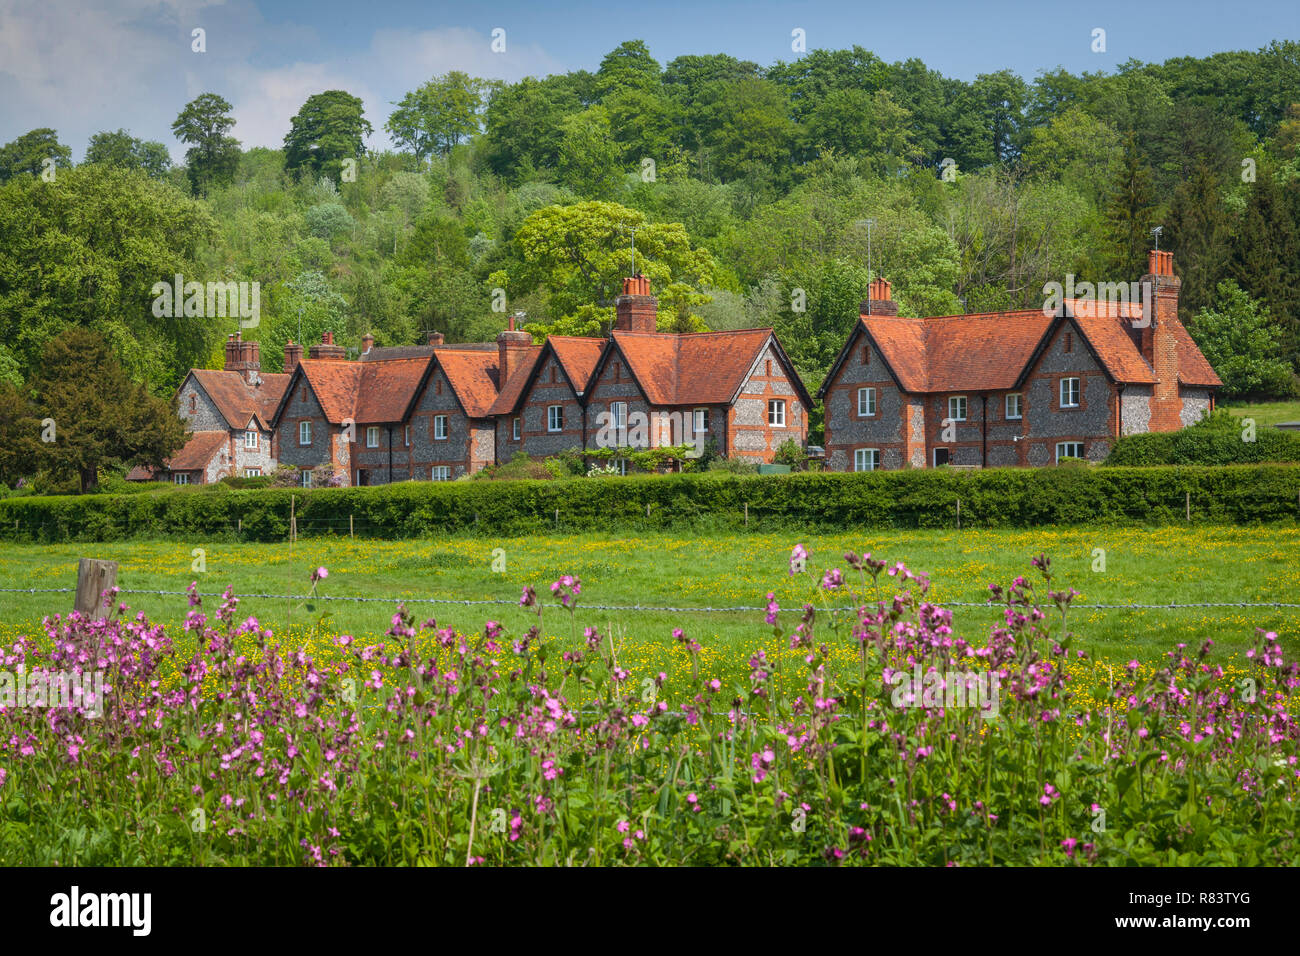 Traditional brick and flint cottages at Hambleden, Buckinghamshire with pink wild flowers in the foreground - Stock Image